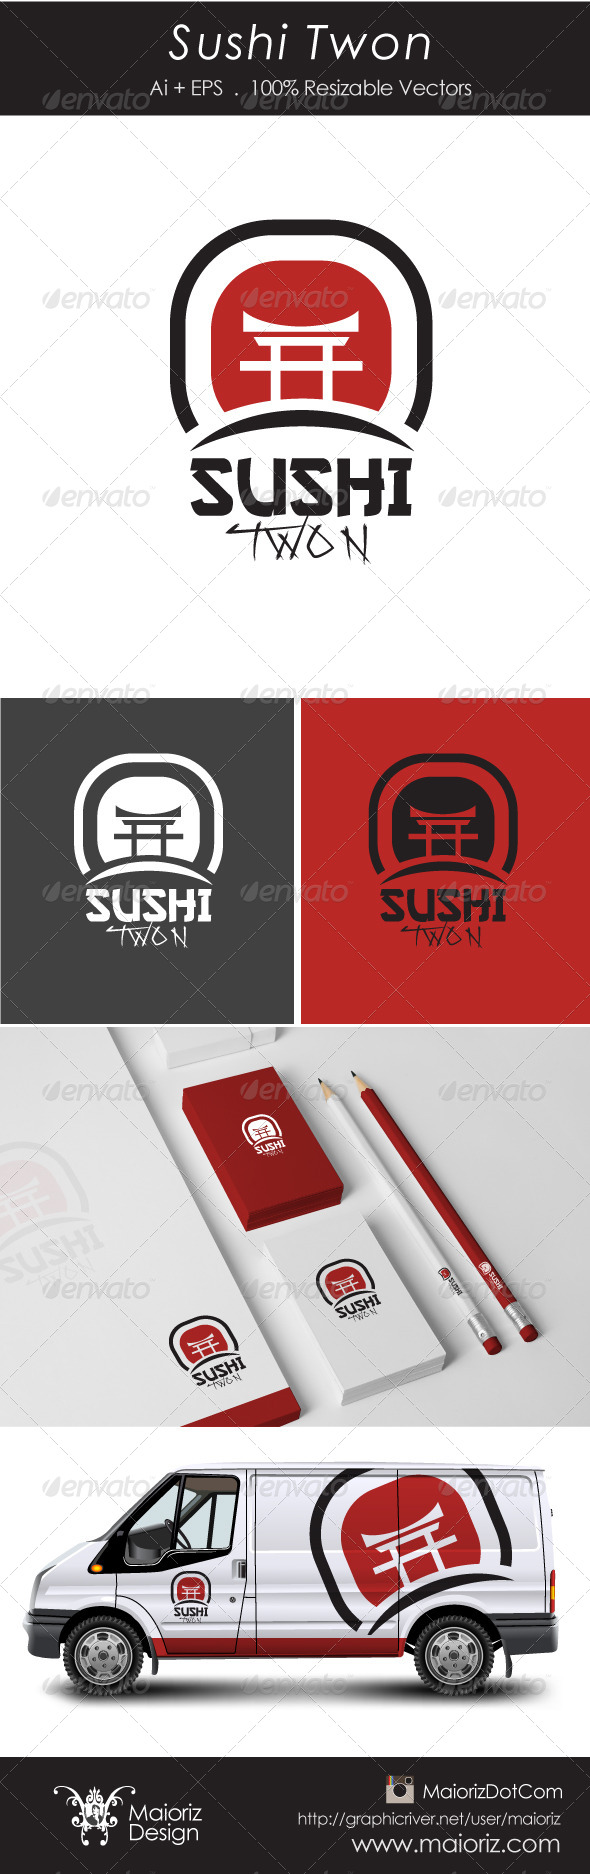 GraphicRiver Sushi Twon Logotype 6039236